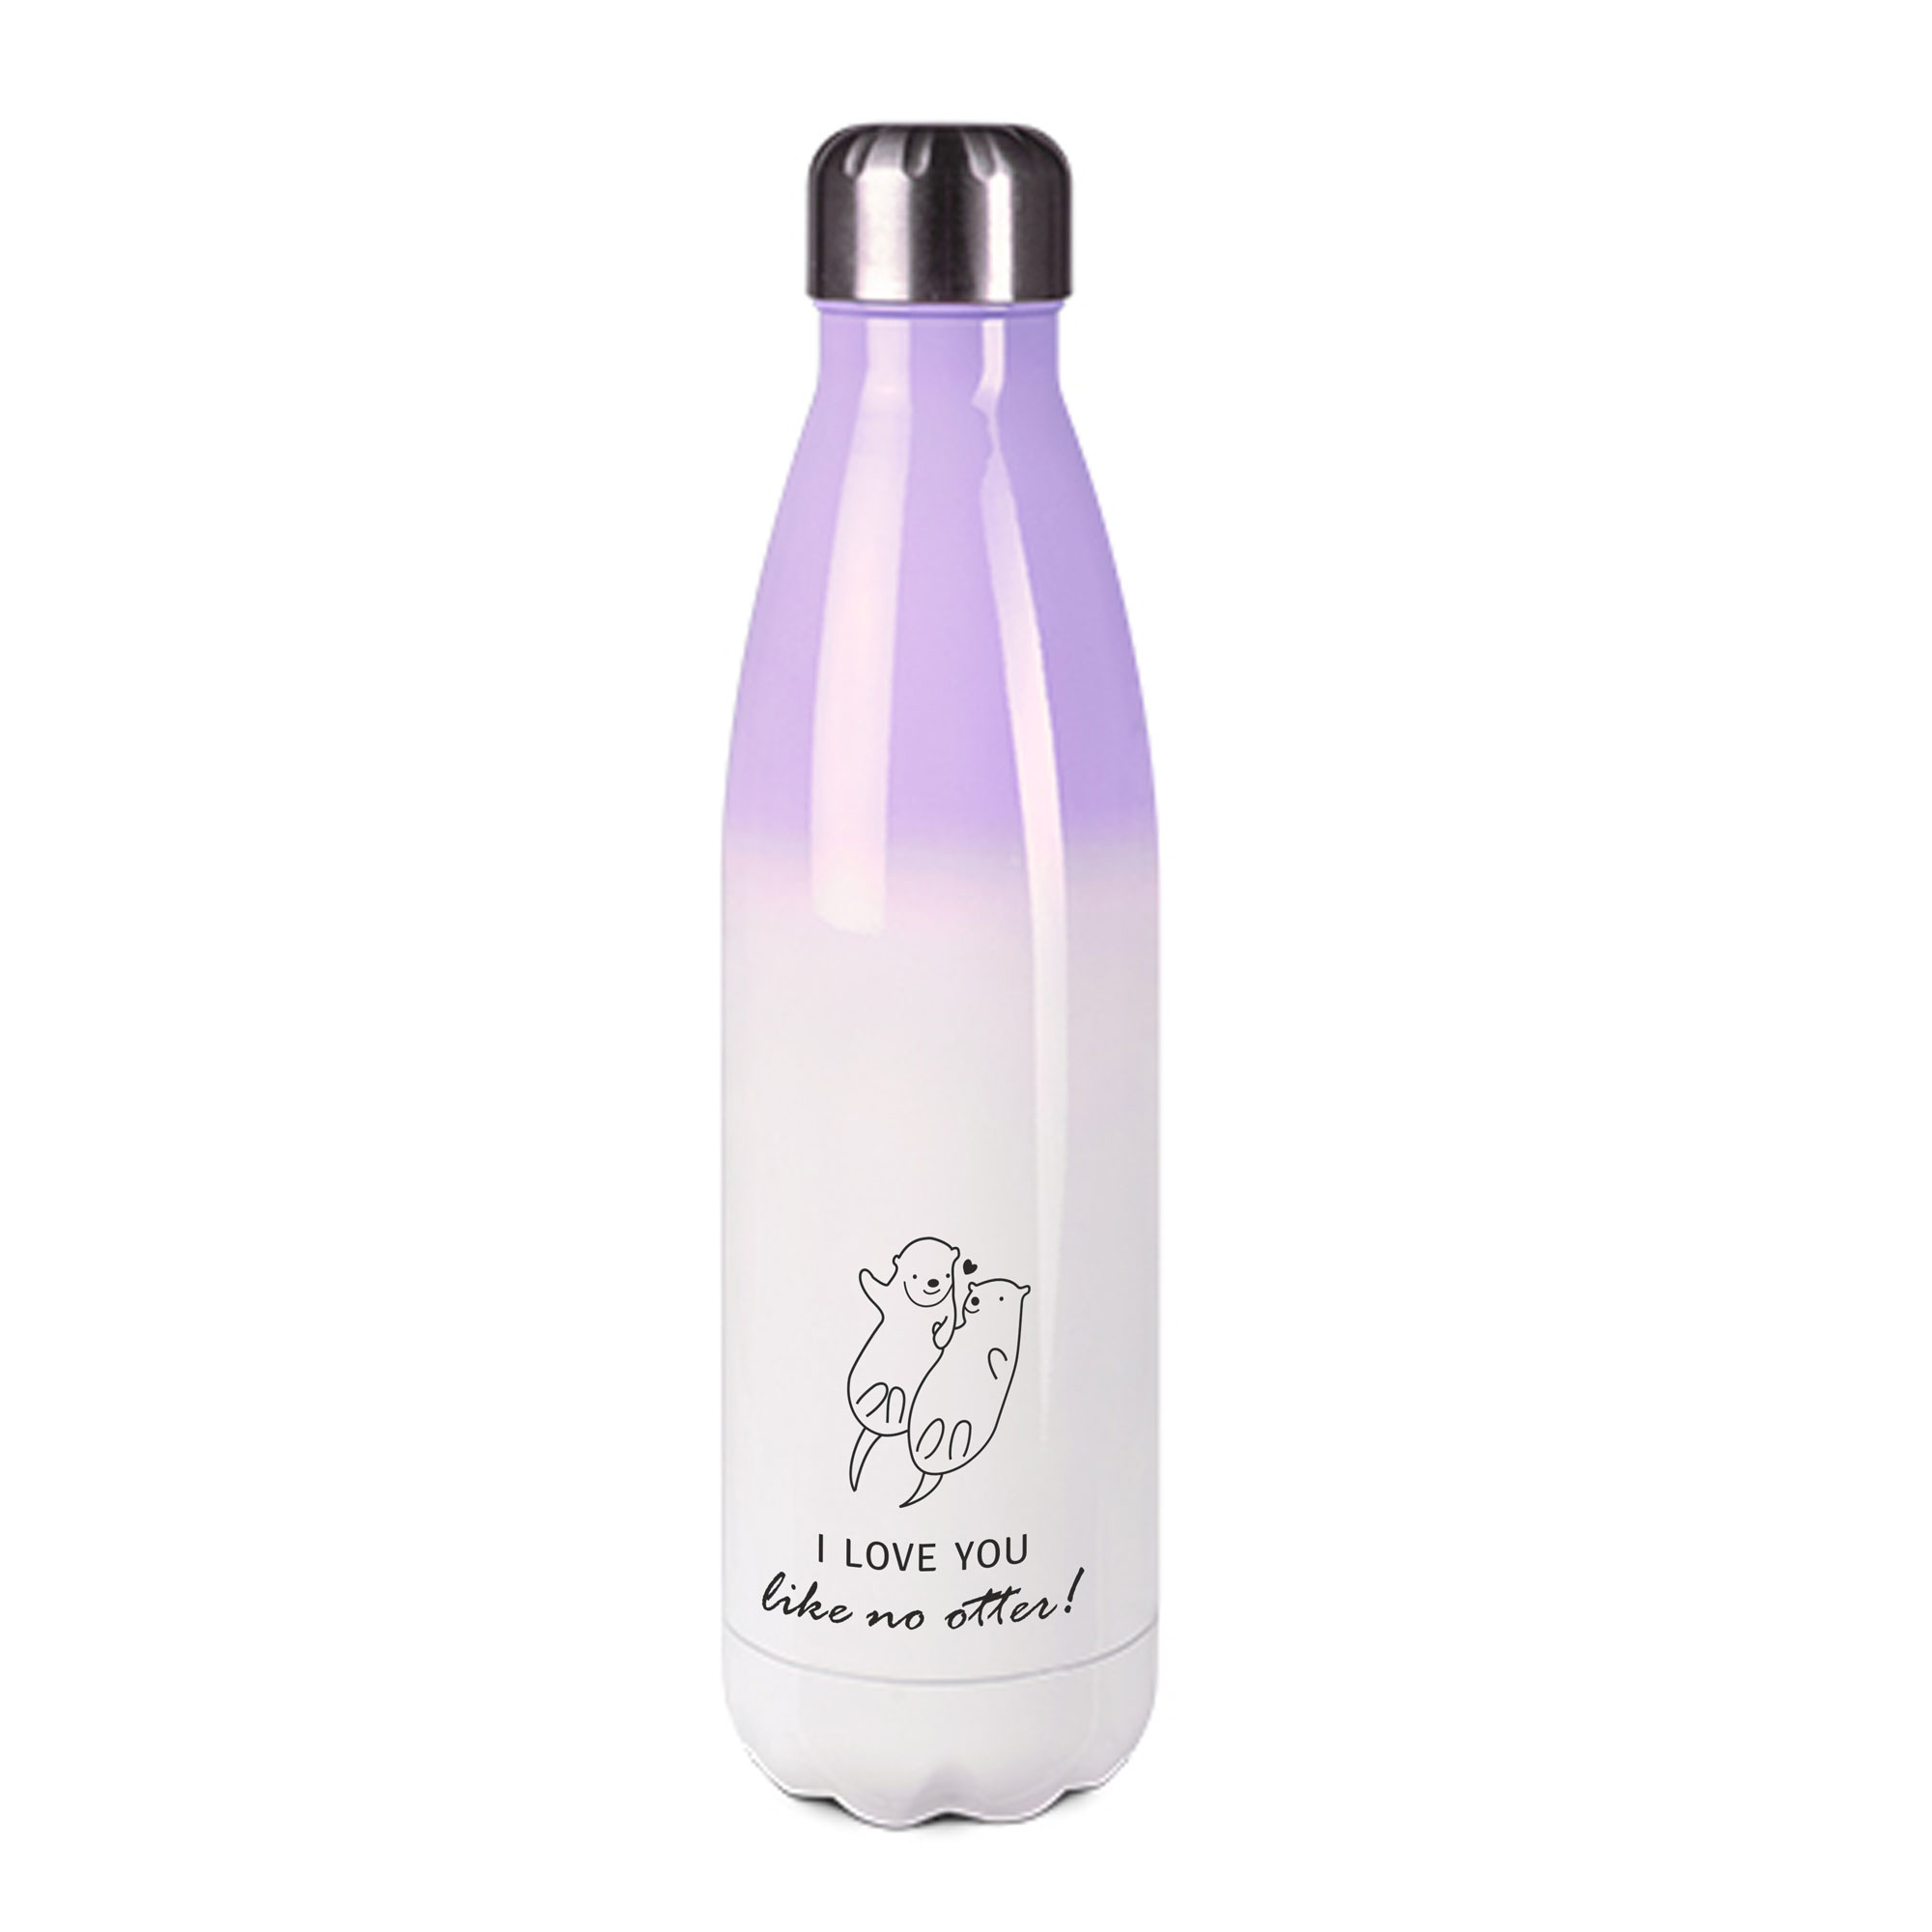 Edelstahl-Thermosflasche purple/weiß mit Druck: I LOVE YOU - DON'T LIKE OTTER